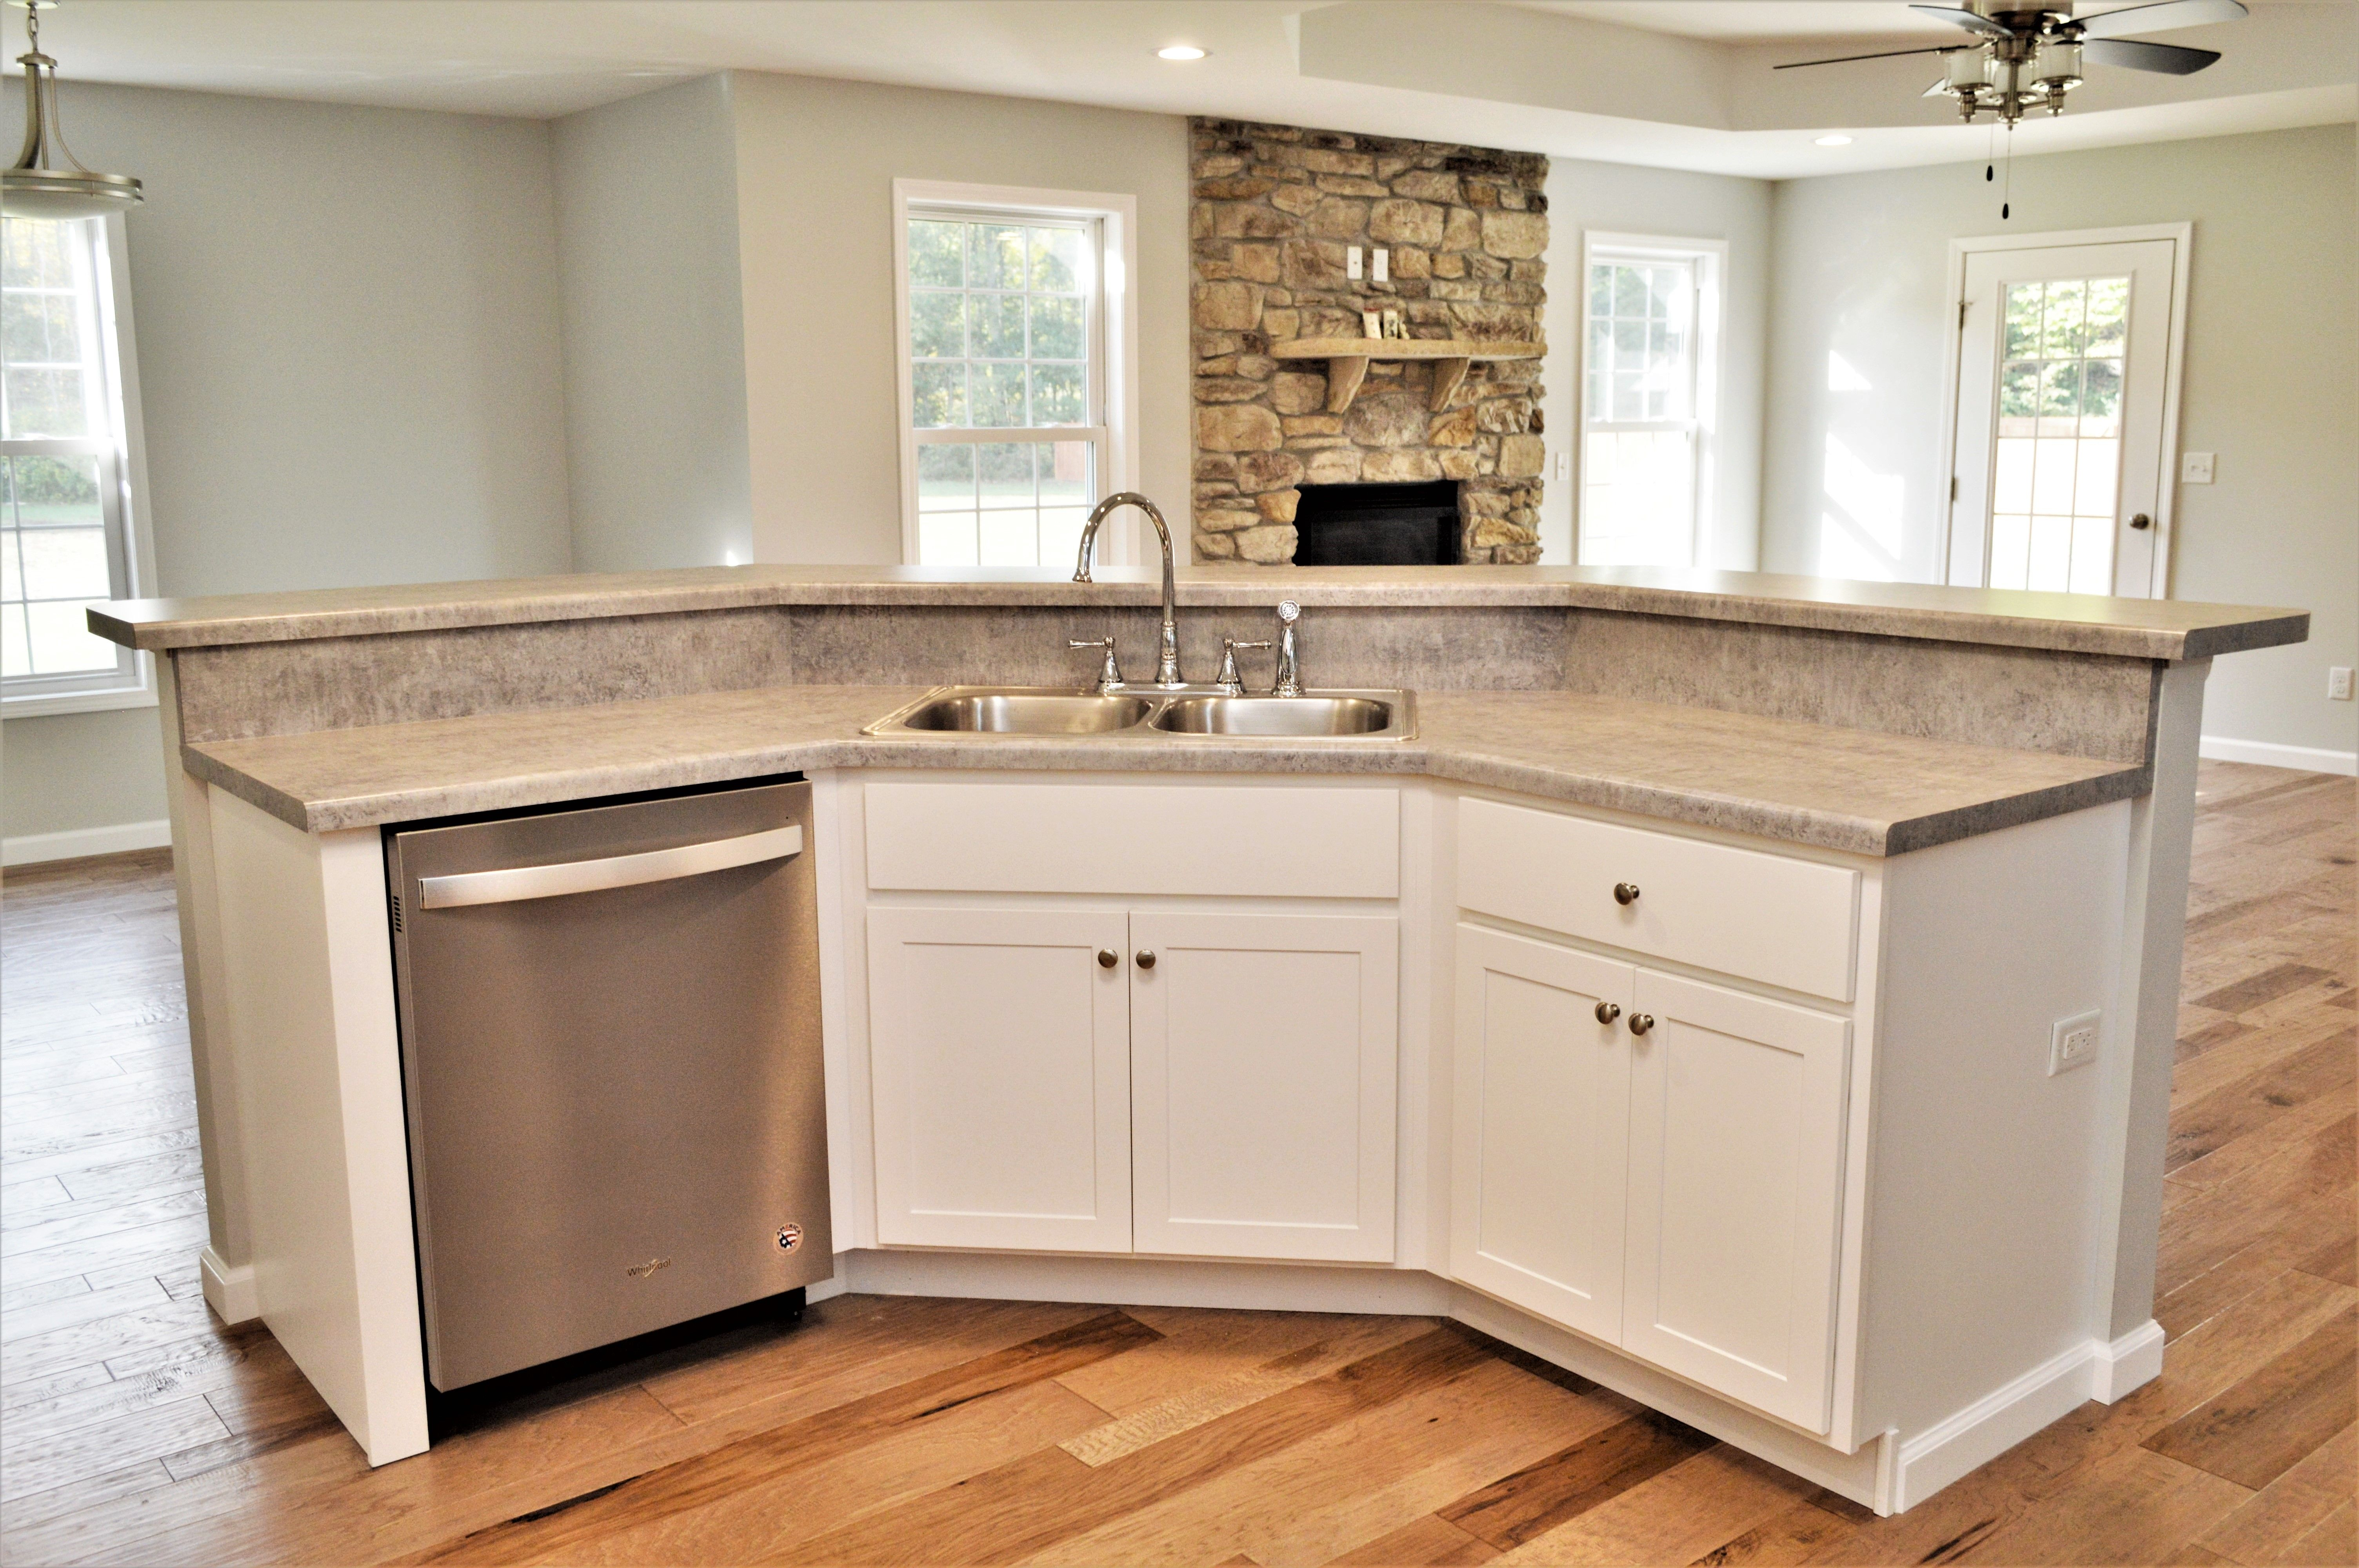 Pin on Knobs and Pulls. Bailey's Cabinets